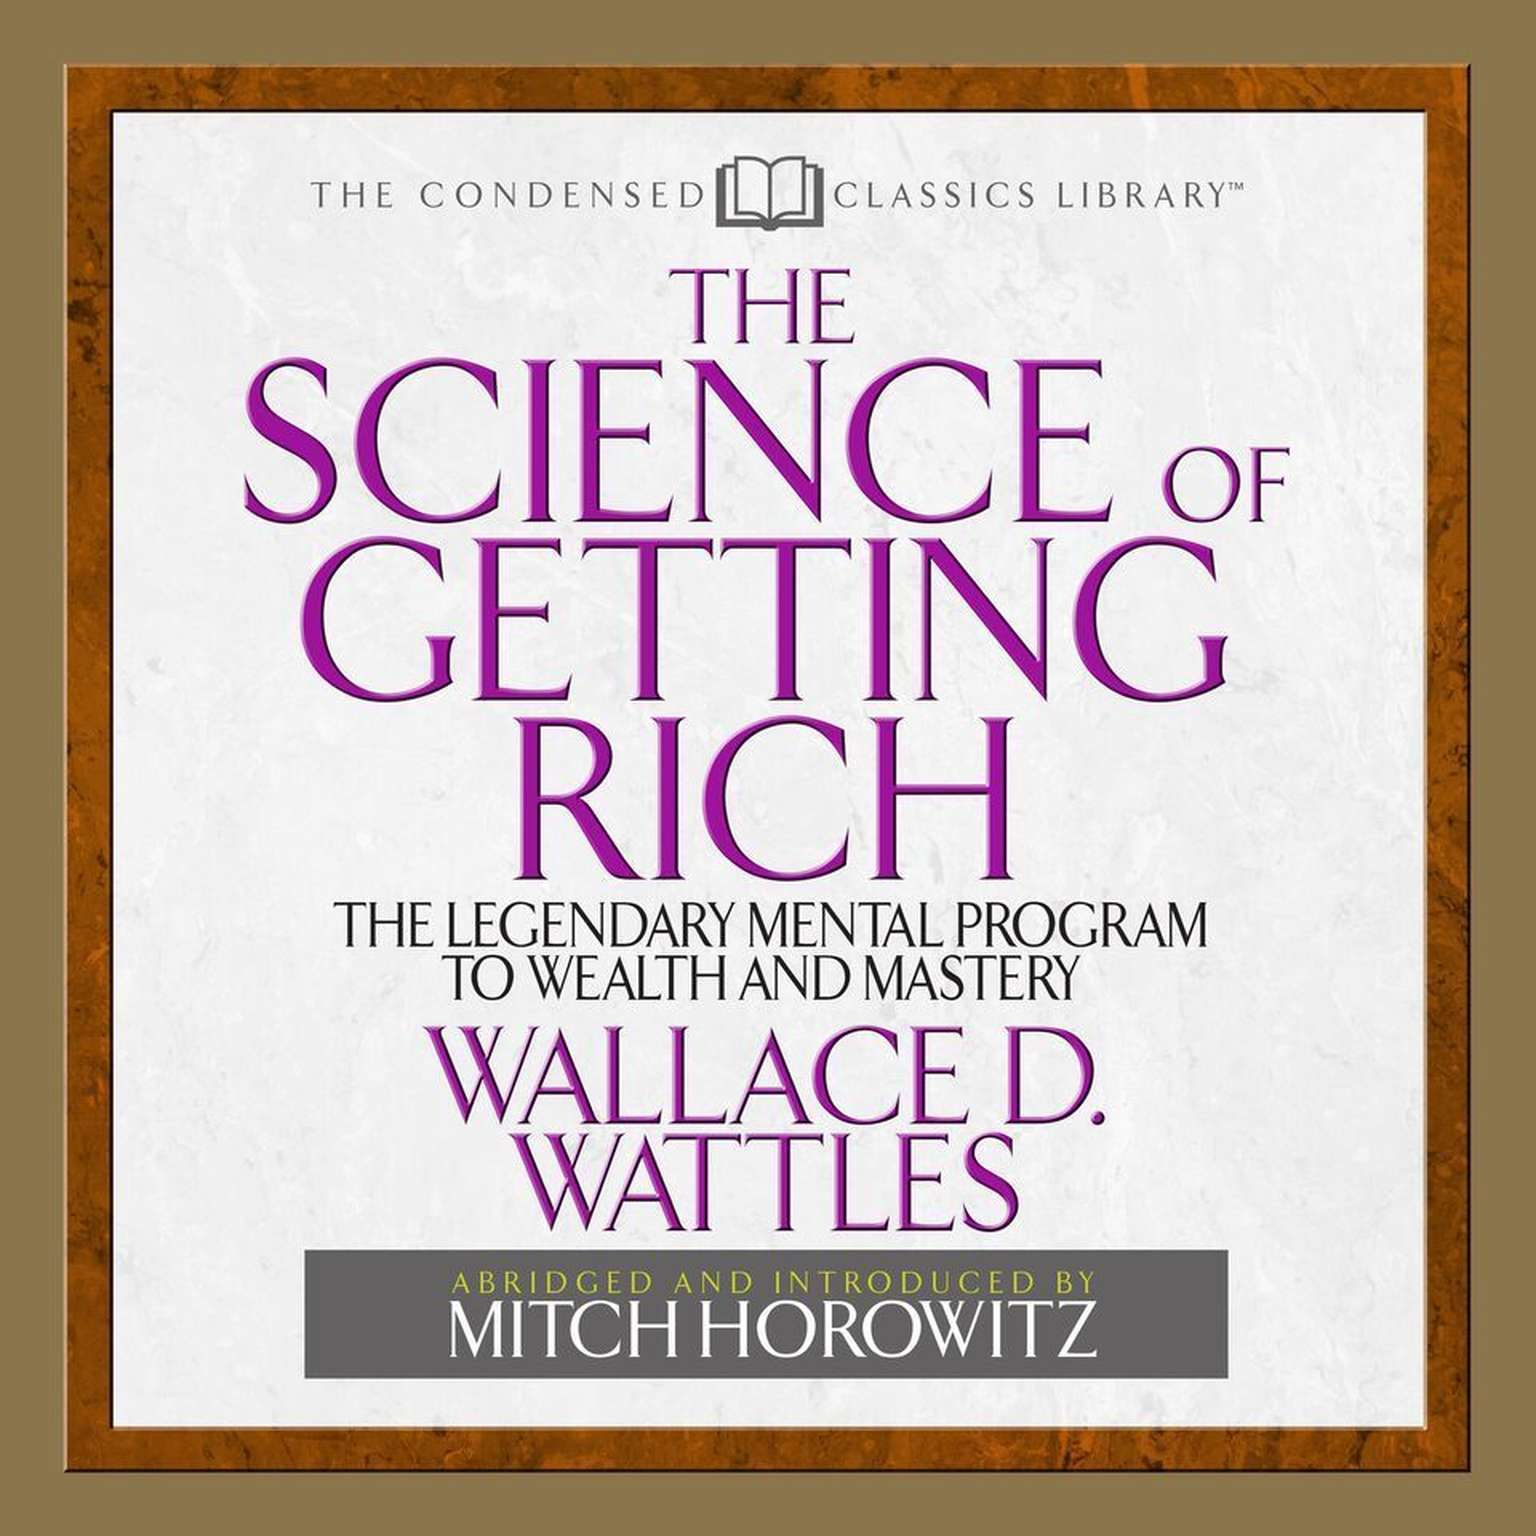 Printable The Science of Getting Rich: The Legendary Mental Program To Wealth And Mastery Audiobook Cover Art